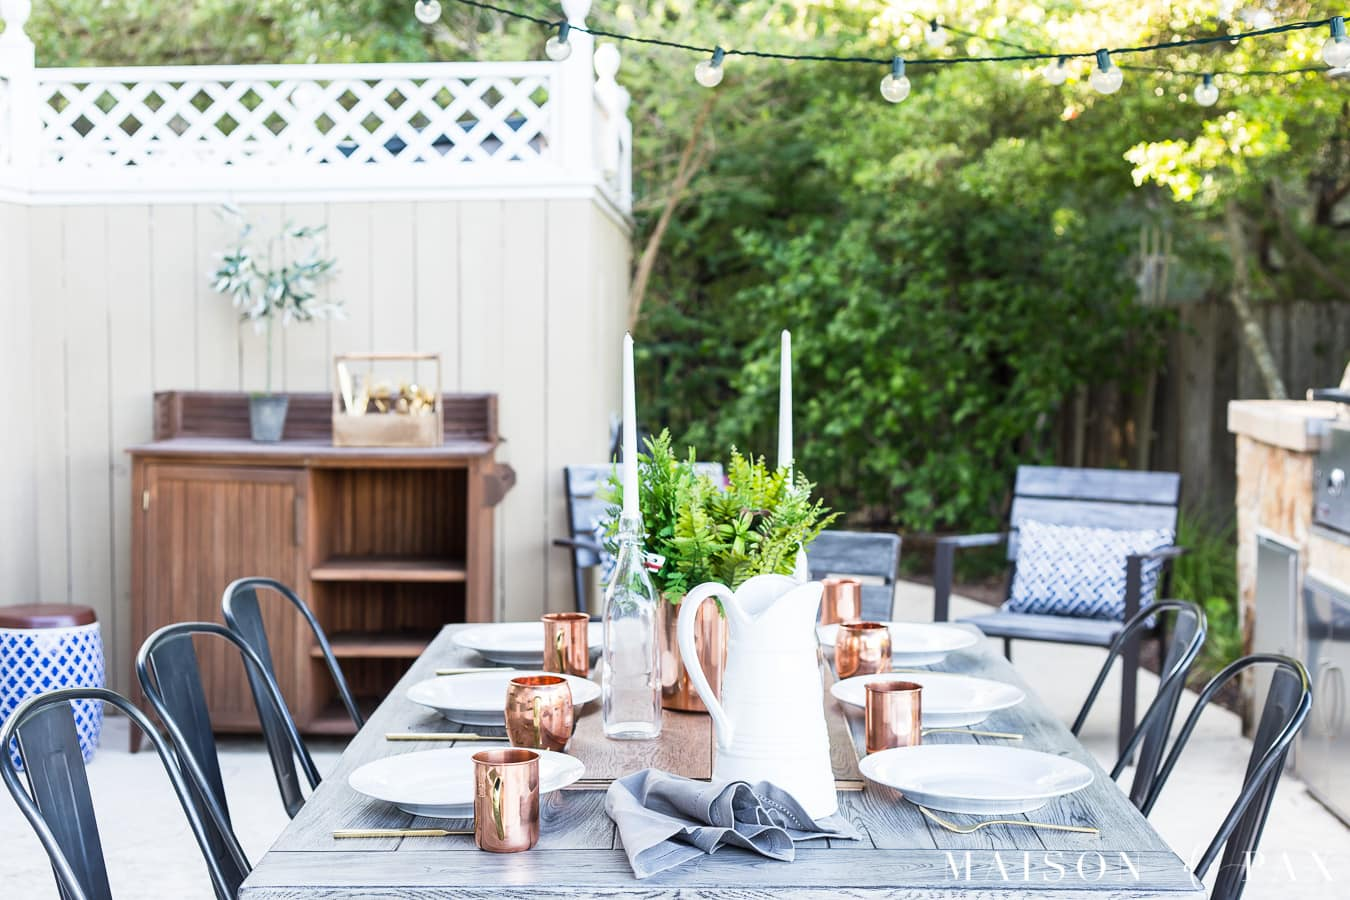 perfectly simple yet elegant outdoor summer dining